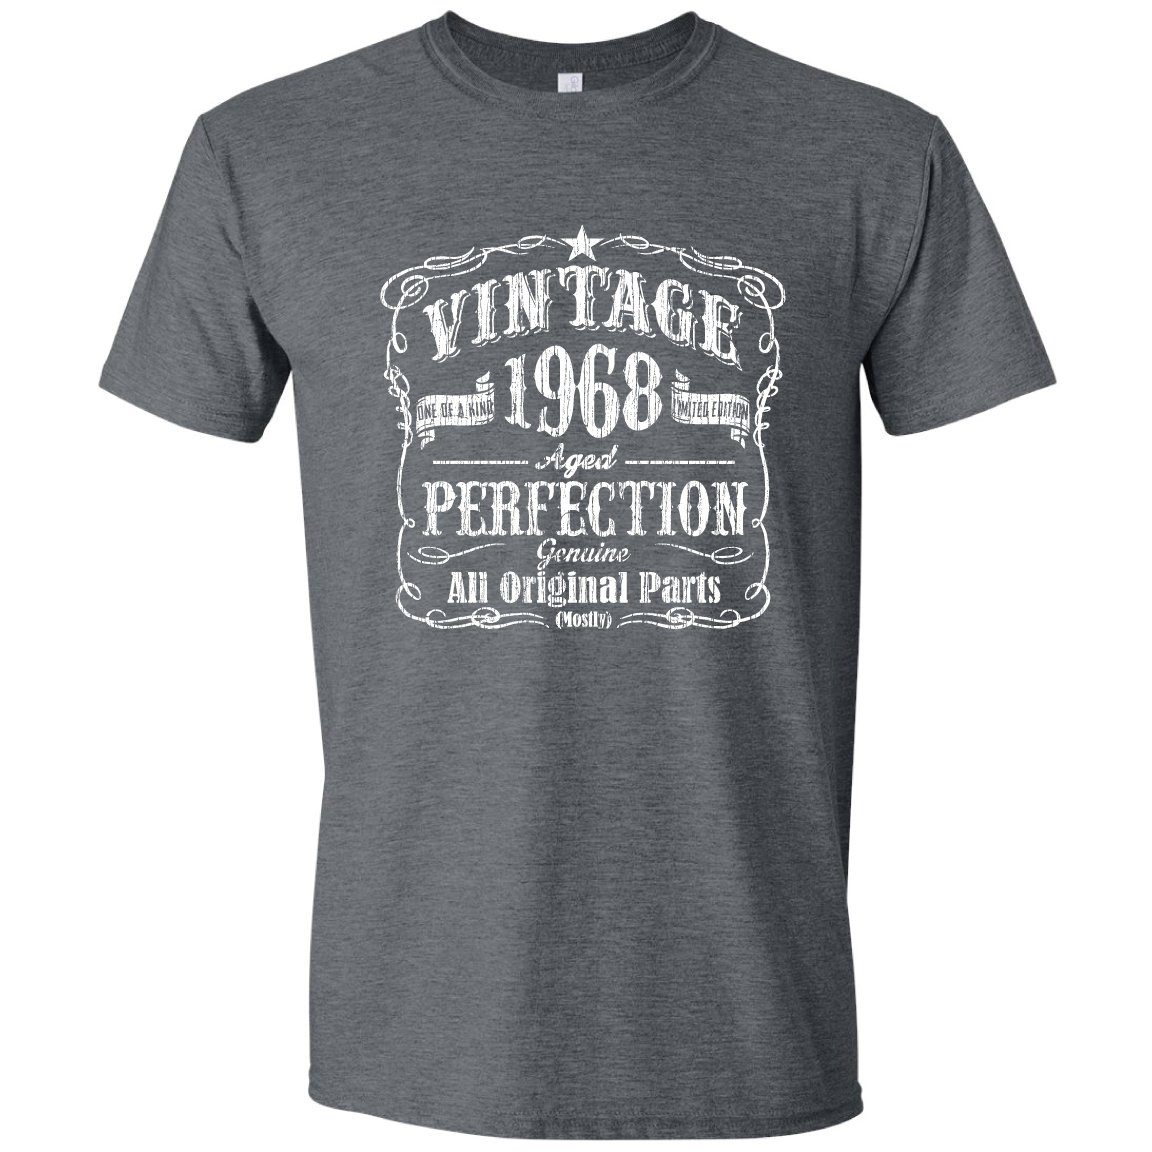 Feisty and Fabulous Vintage 1968 Birthday Shirt, 50th Bday, Grandfather Gift, Black, Large